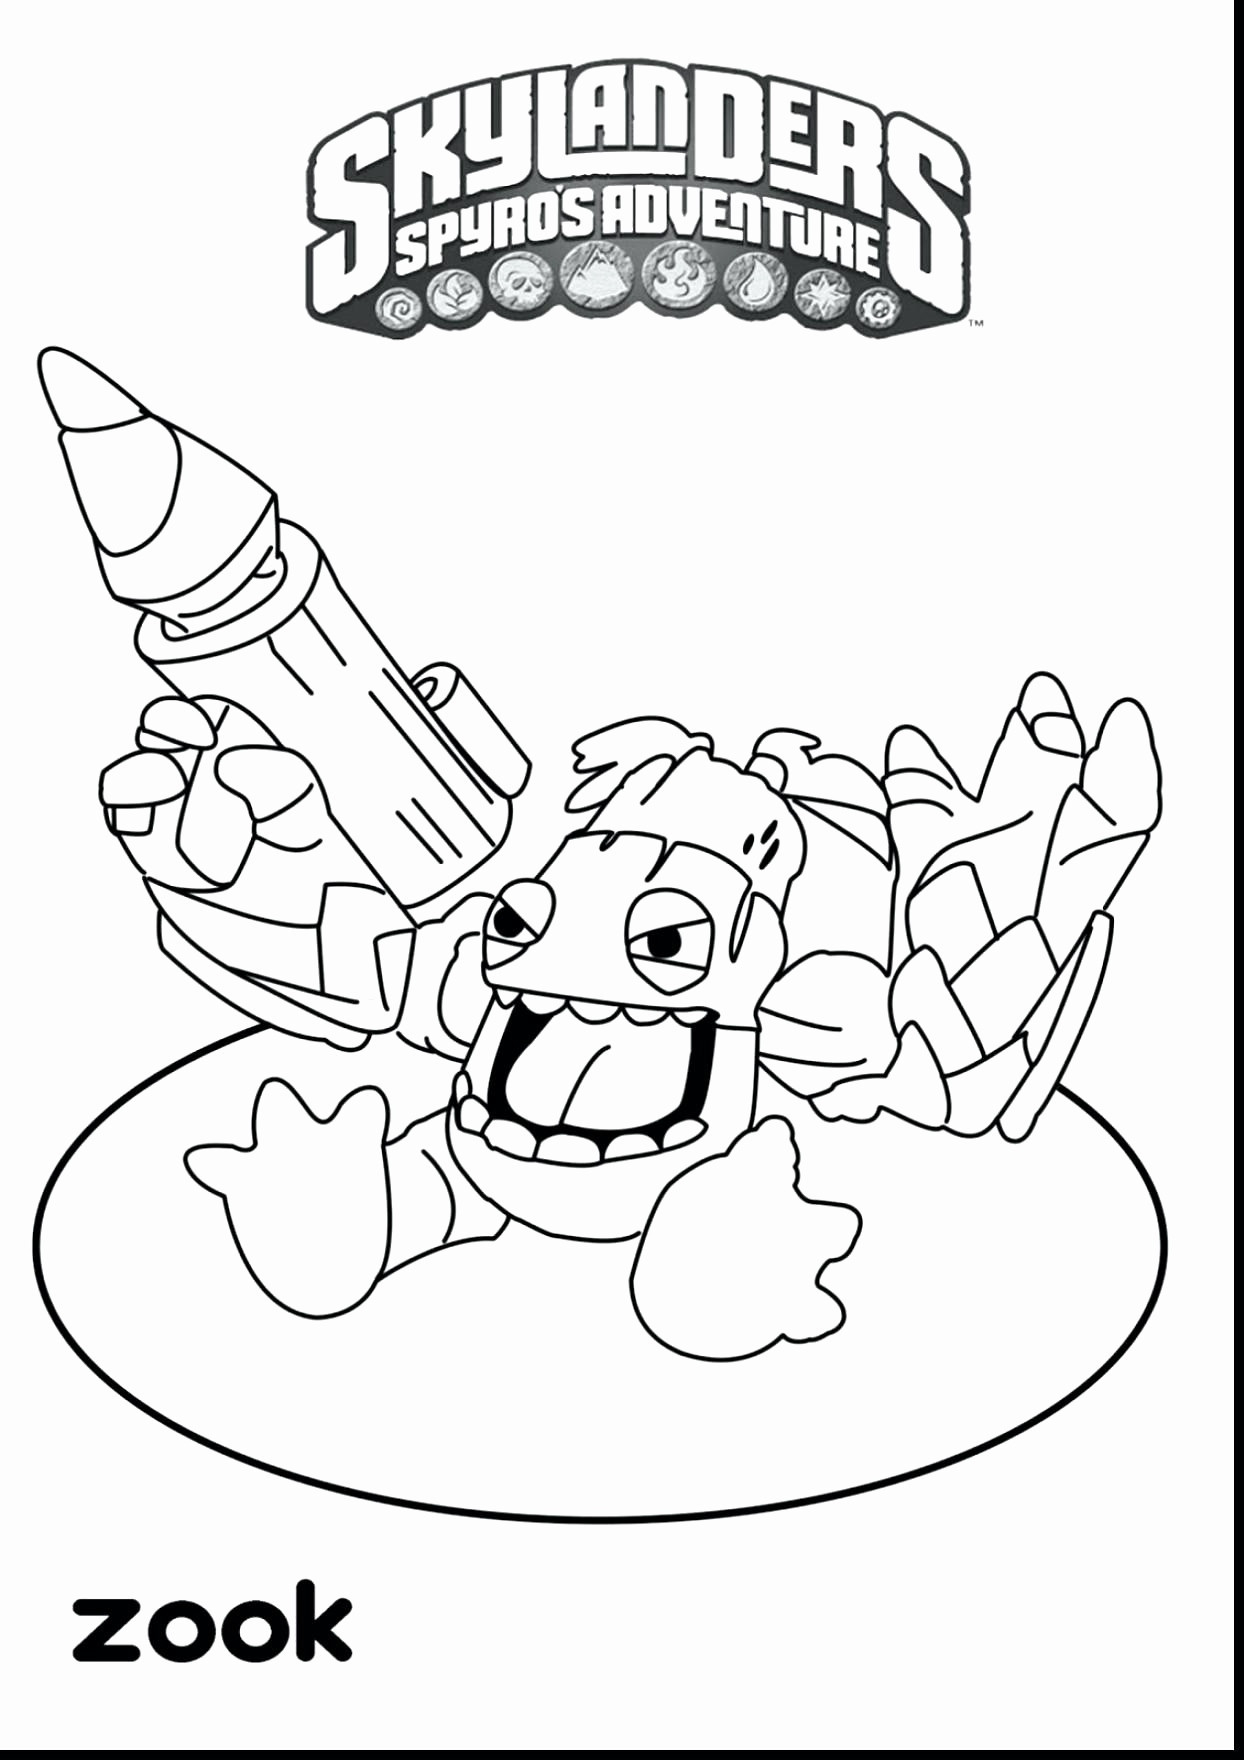 Hospital Coloring Pages Printables  Download 4f - Save it to your computer